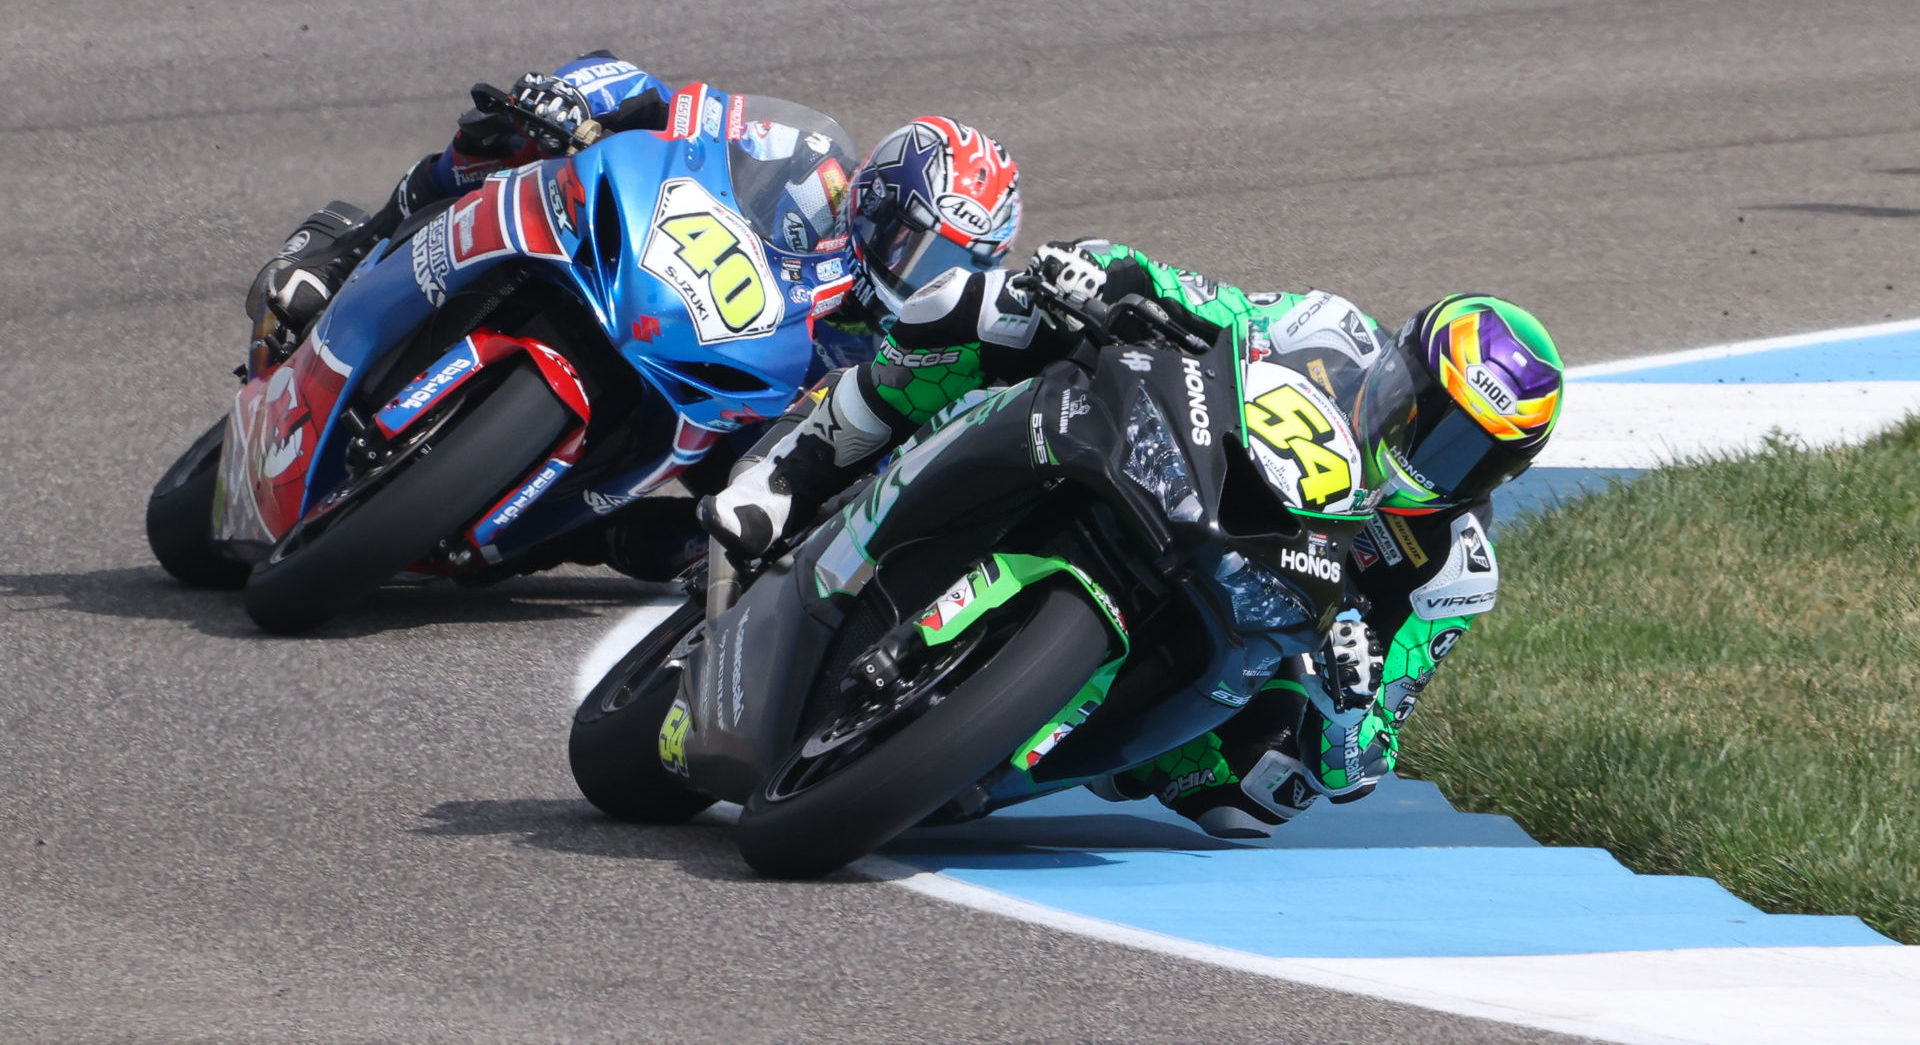 It's been like this all year in Supersport: Richie Escalante (54) vs. Sean Dylan Kelly (40). We can expect more or the same at WeatherTech Raceway Laguna Seca this coming weekend. Photo by Brian J. Nelson, courtesy MotoAmerica.